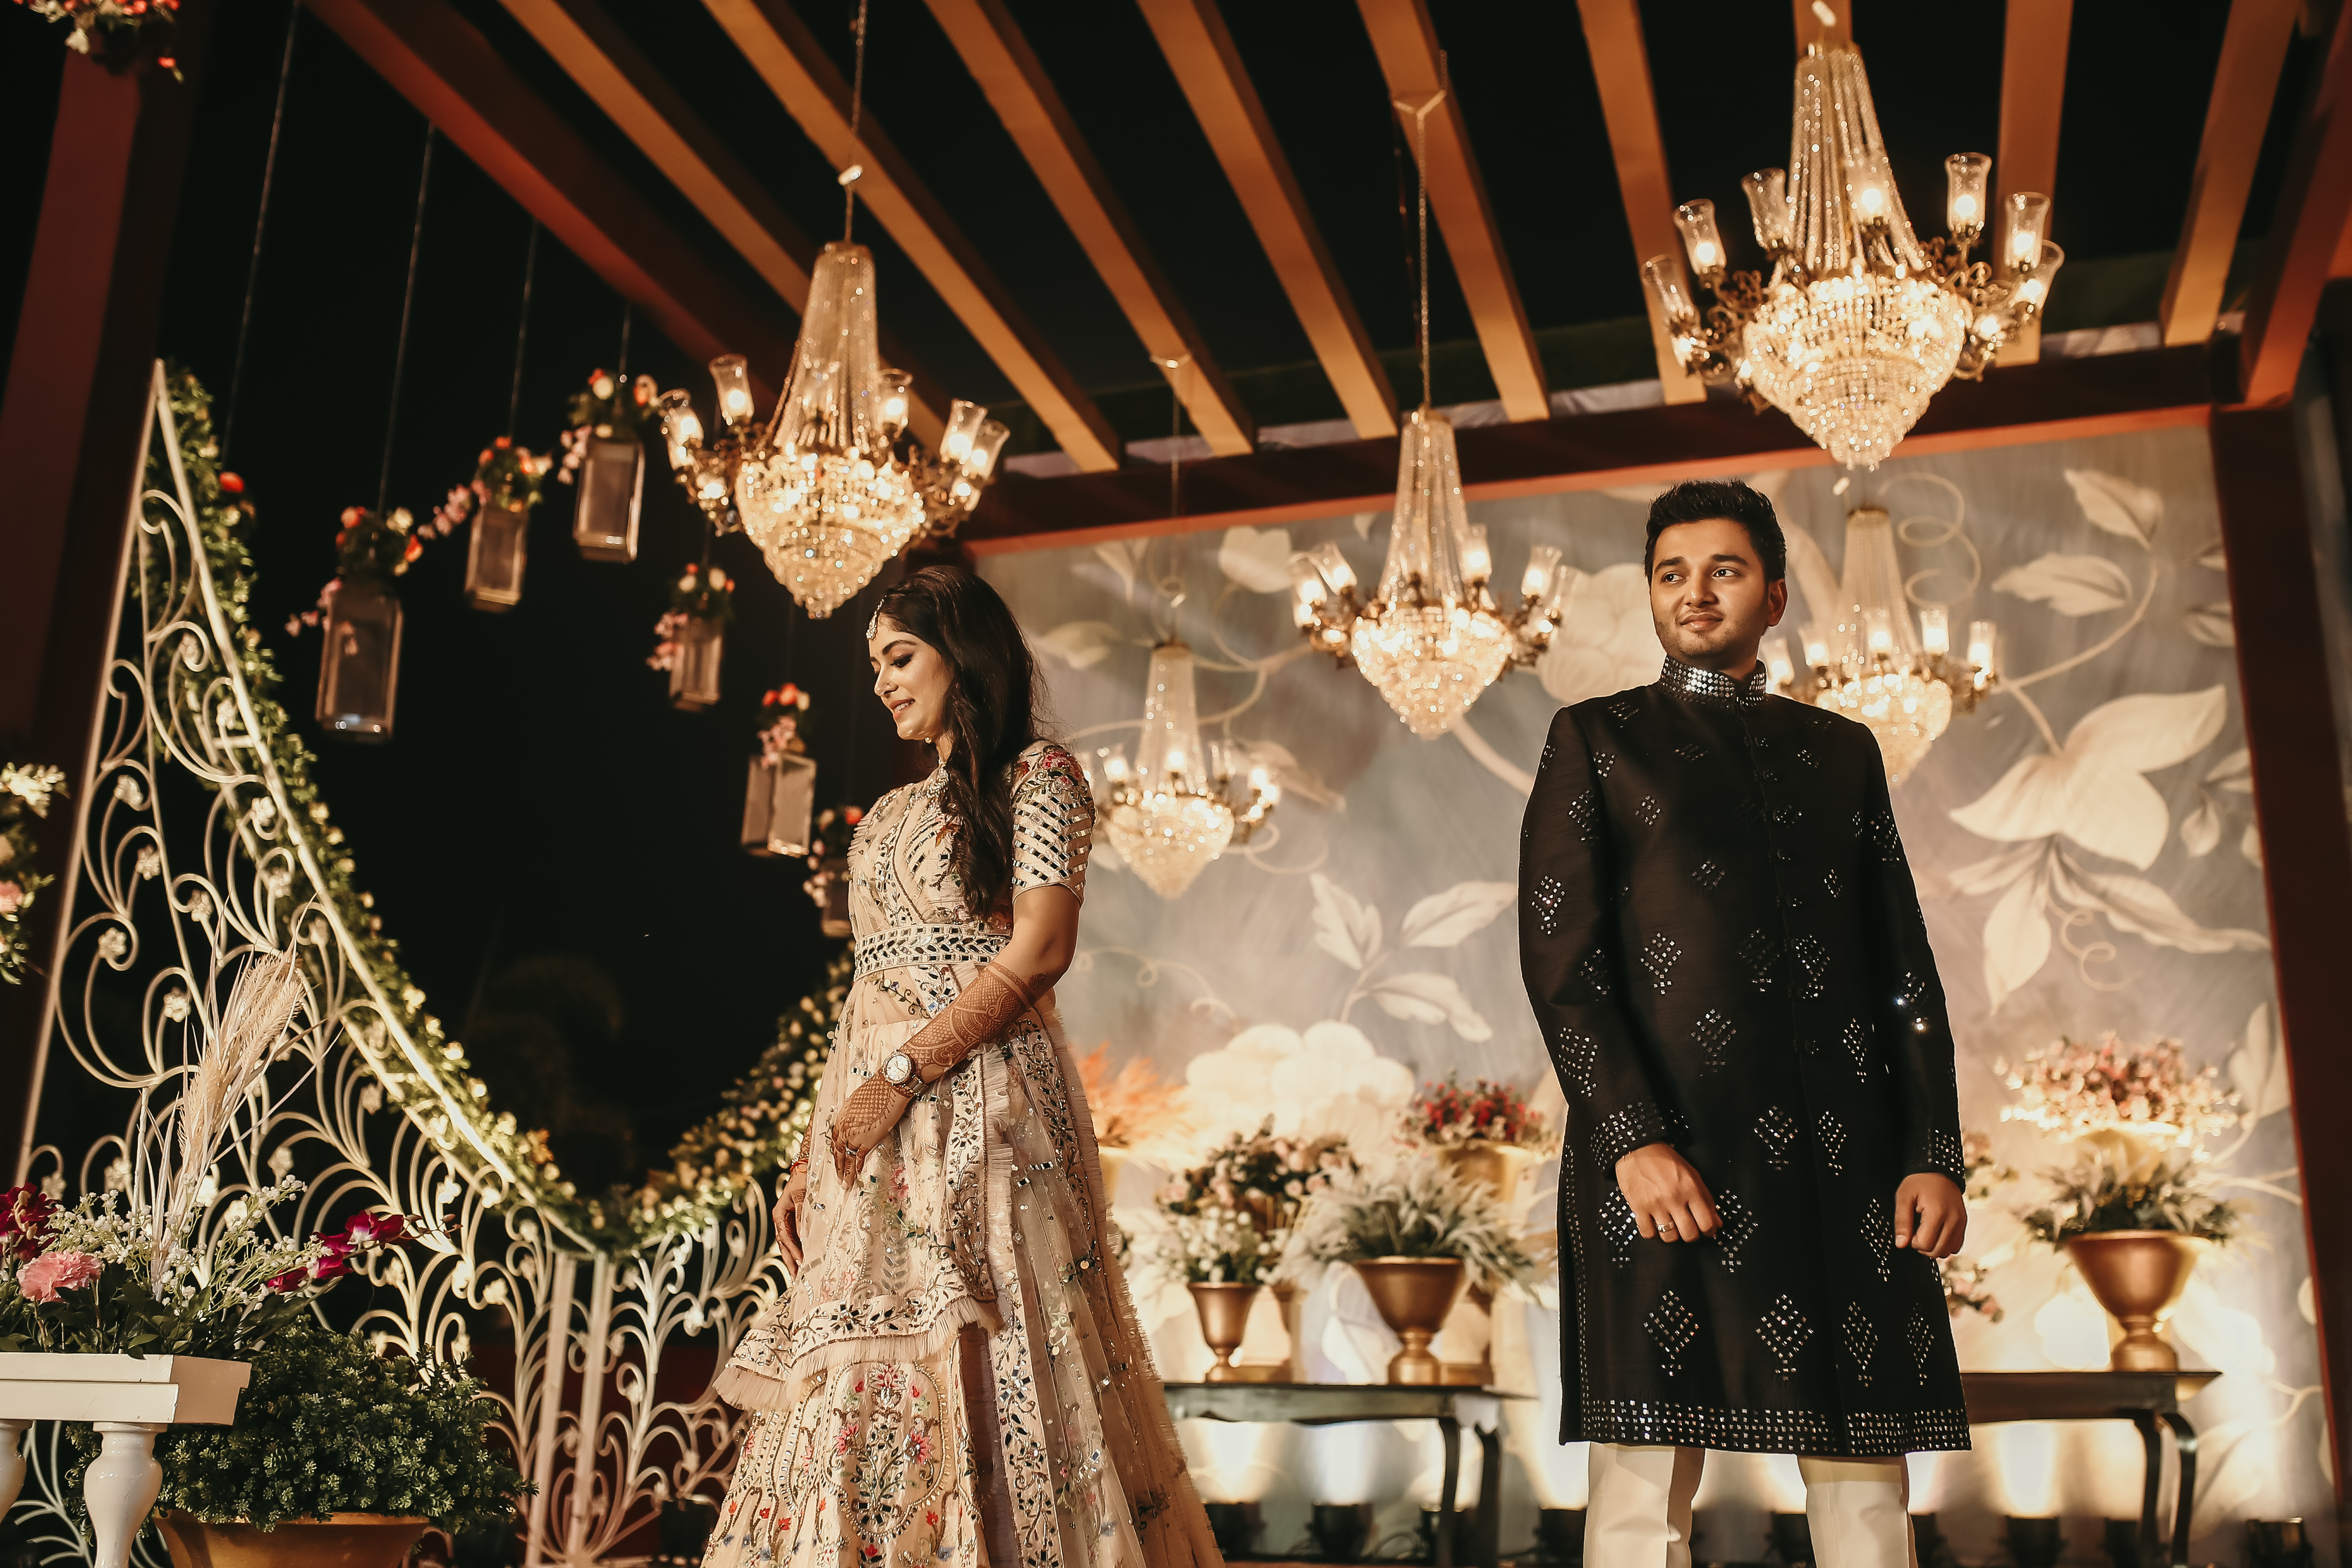 Royal Chandeliers Sangeet Ceremony Decor and Beautiful Bride & Groom